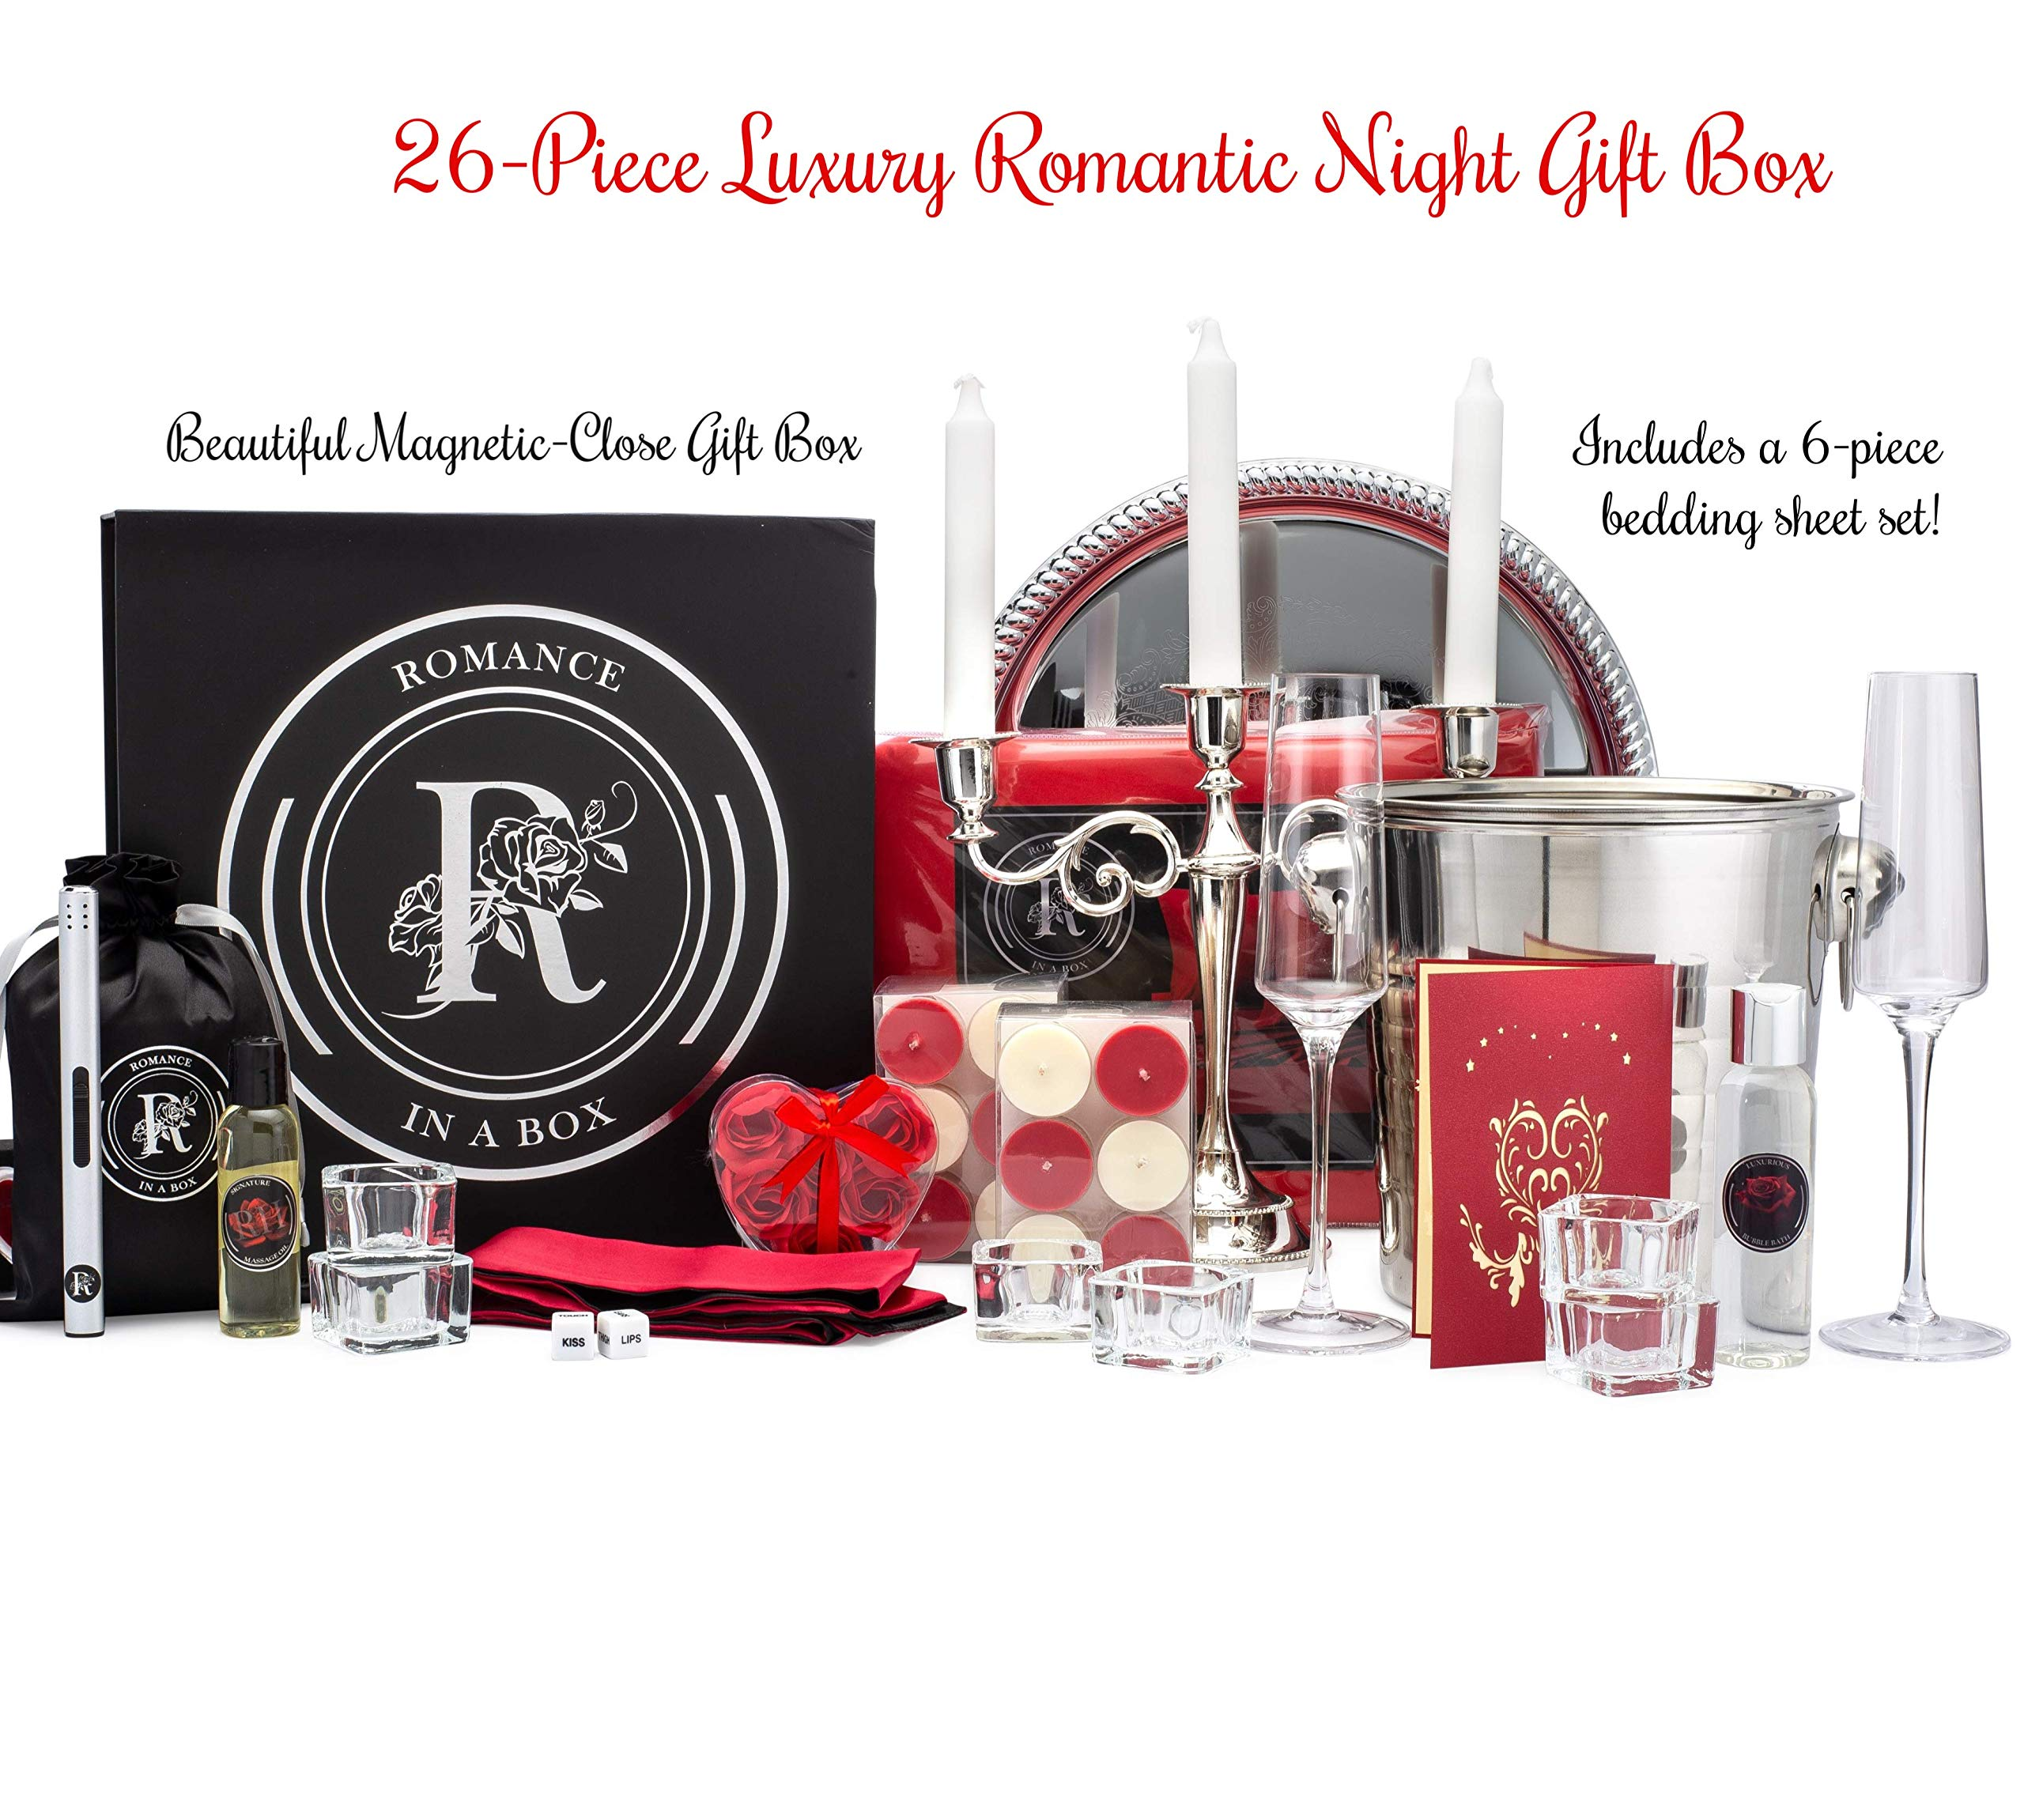 Luxury King Romance-in-a-Box | Romantic Gifts for Her | Anniversary Proposal Decorations | Romance Kit with Romantic Card Romantic Candles and Rose Petals